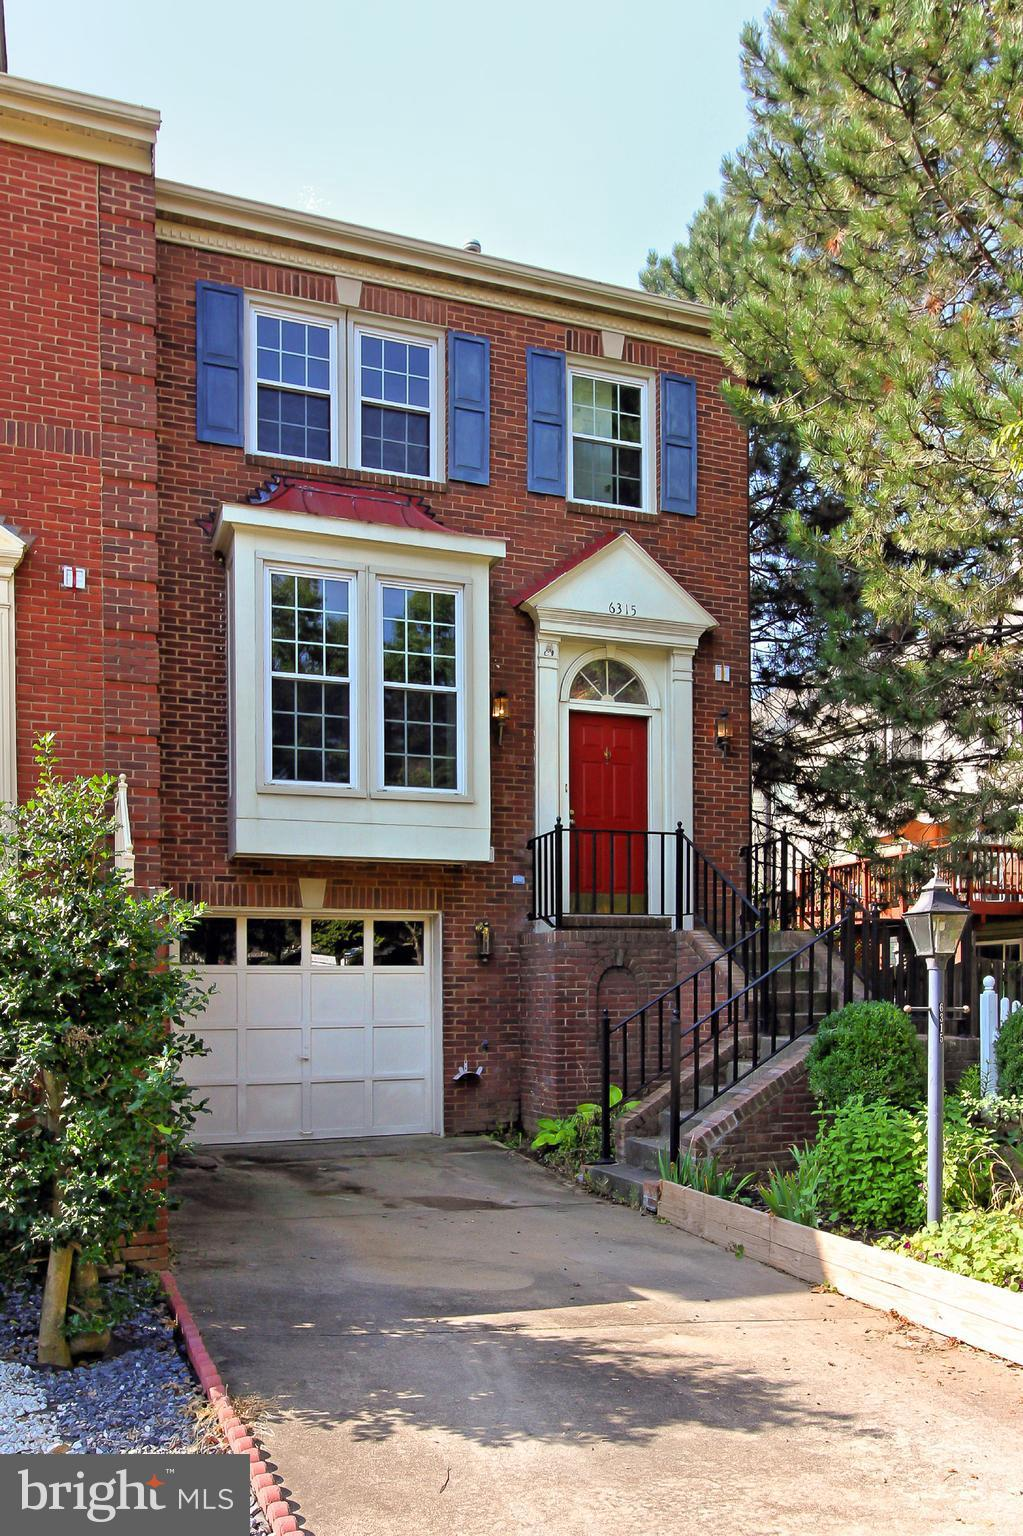 End unit townhome with garage and driveway parking. Located in East Alexandria minutes from Historic Old Town Alexandria, Pentagon, and downtown Washington D.C.  2 BR, 2.5 BA. Walkout lower level, Formal dining room, and living room. Two fireplaces, deck, patio, skylight, bay window and more!